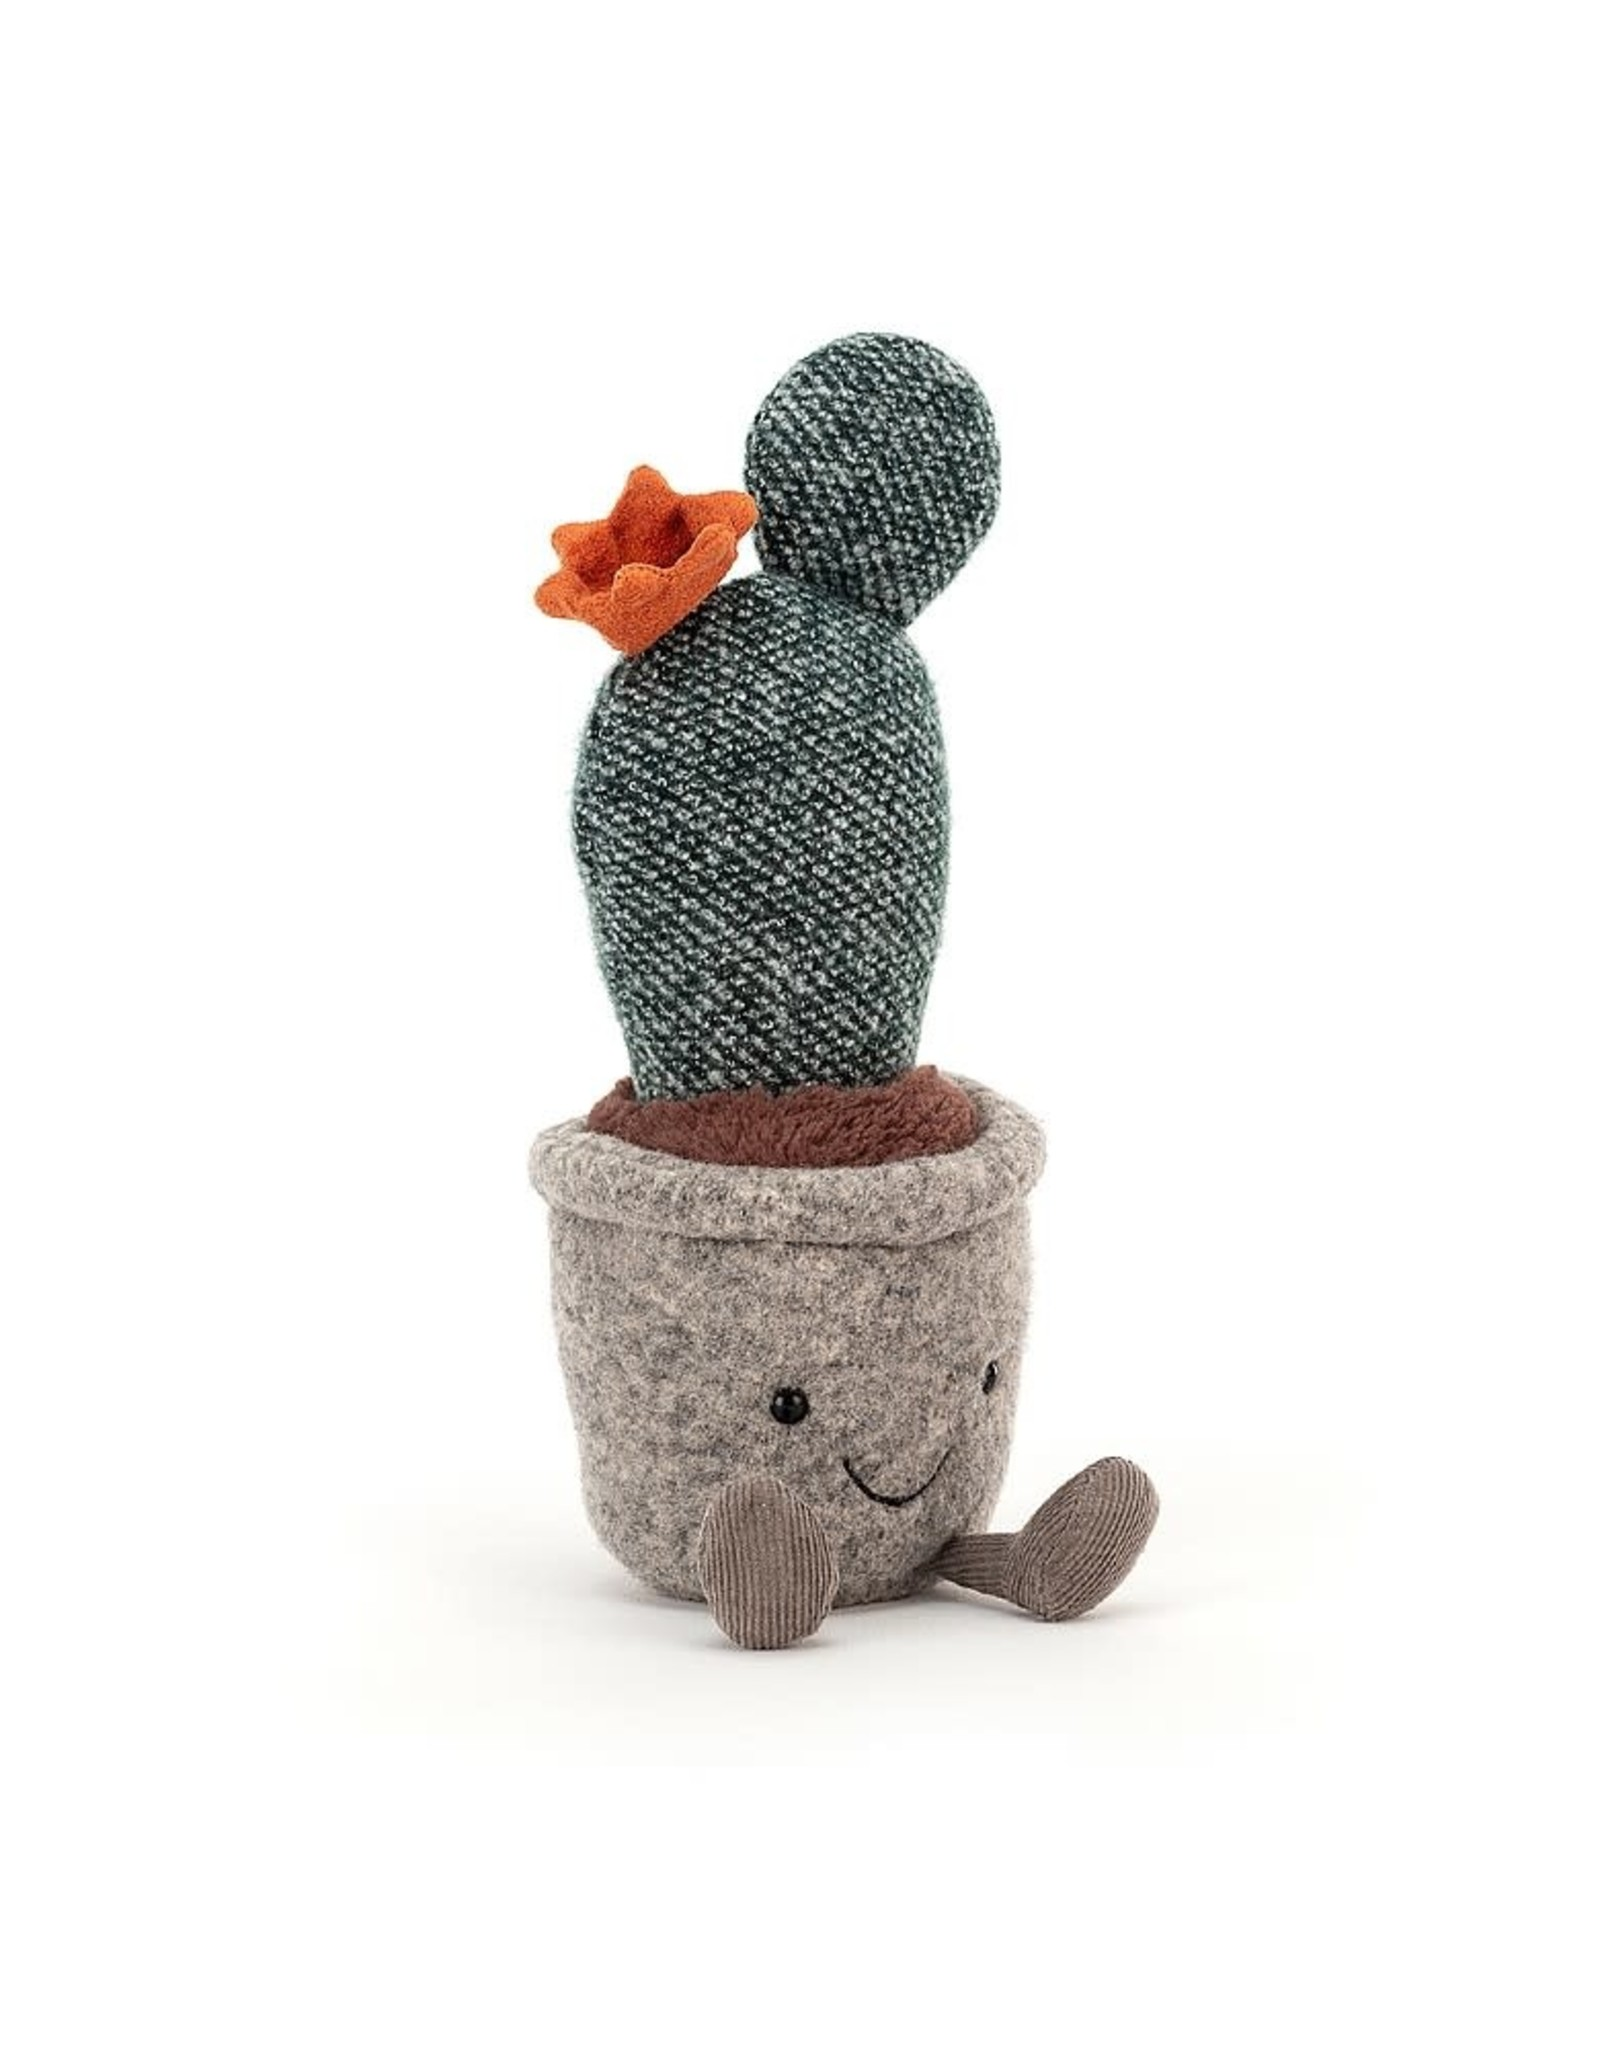 Jellycat JellyCat Silly Succulent Prickly Pear Cactus